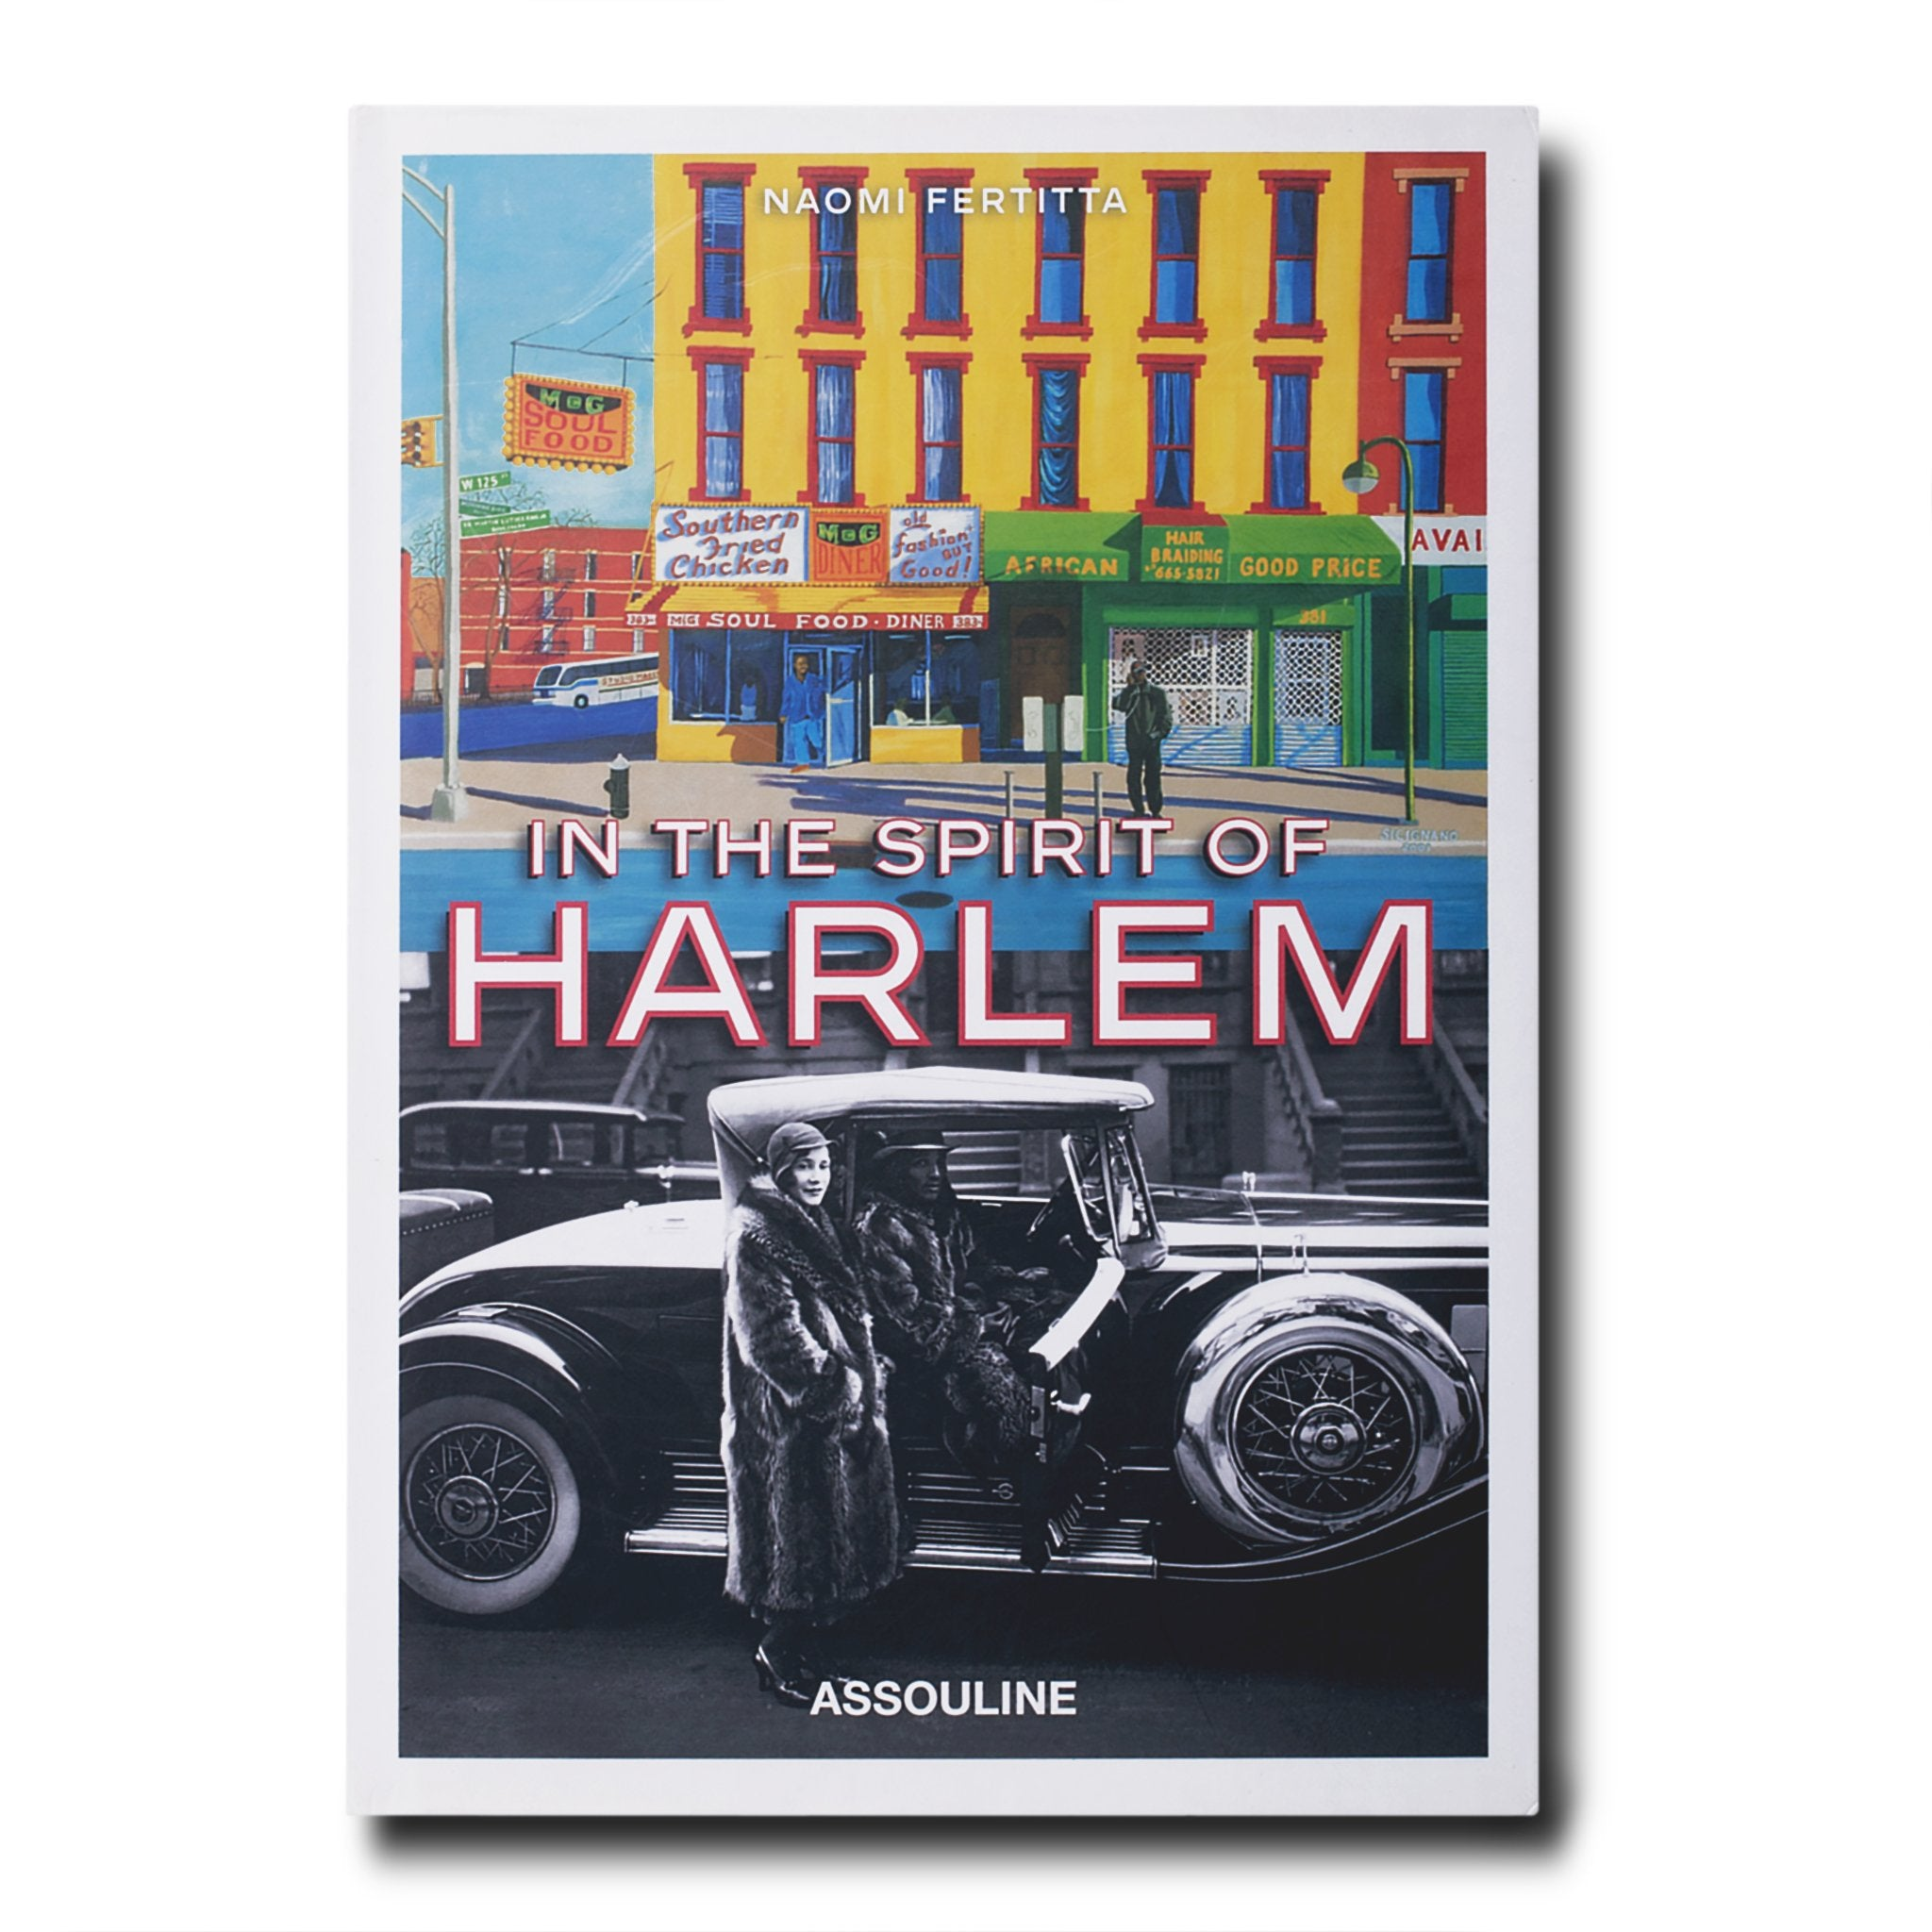 In The Spirit of Harlem - Assouline